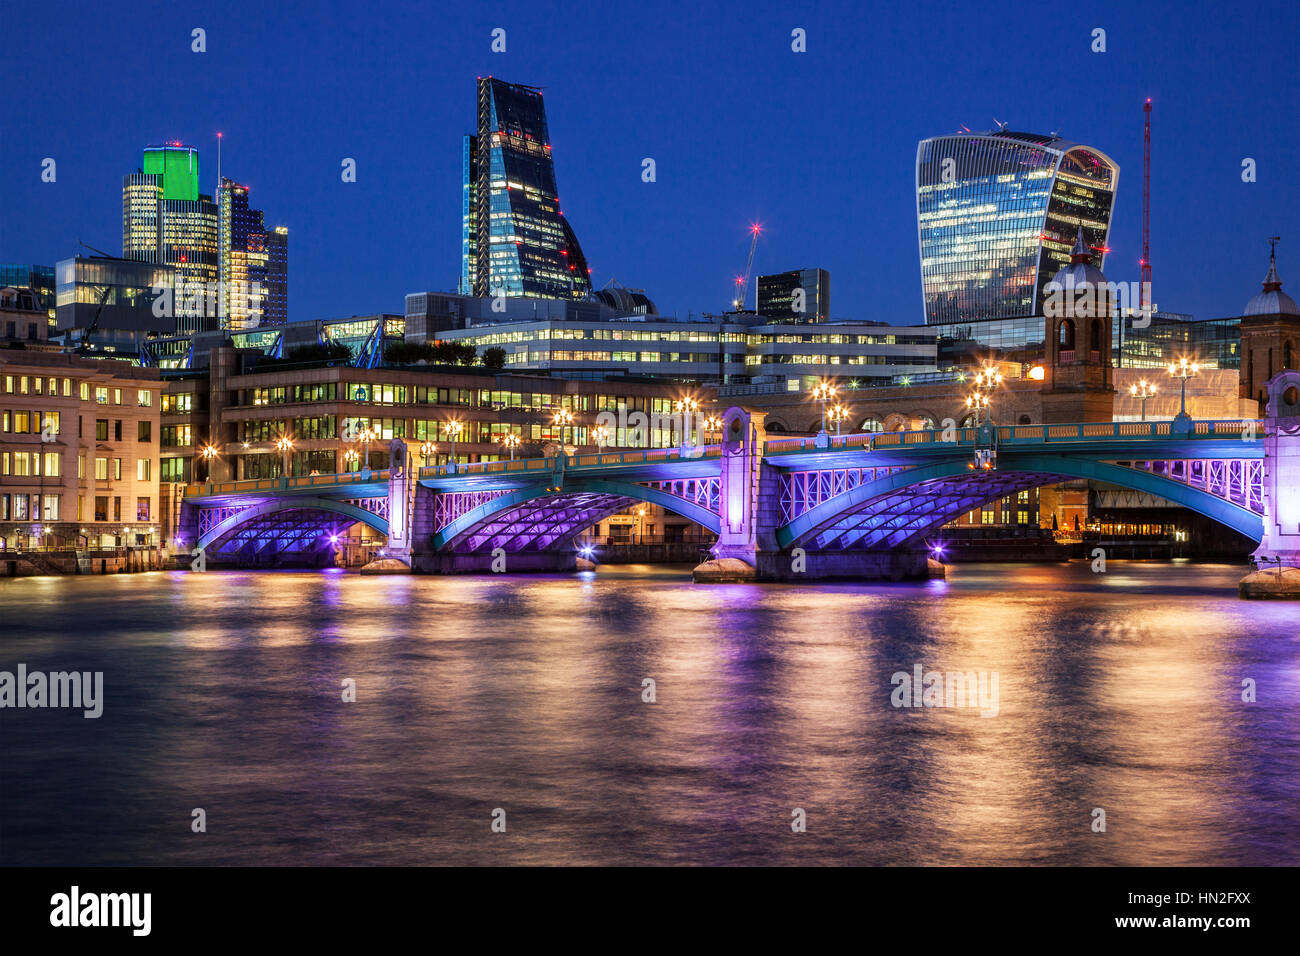 Night time on the River Thames at Southwark Bridge in London with the 'Cheesegrater' and 'Walkie Talkie' - Stock Image